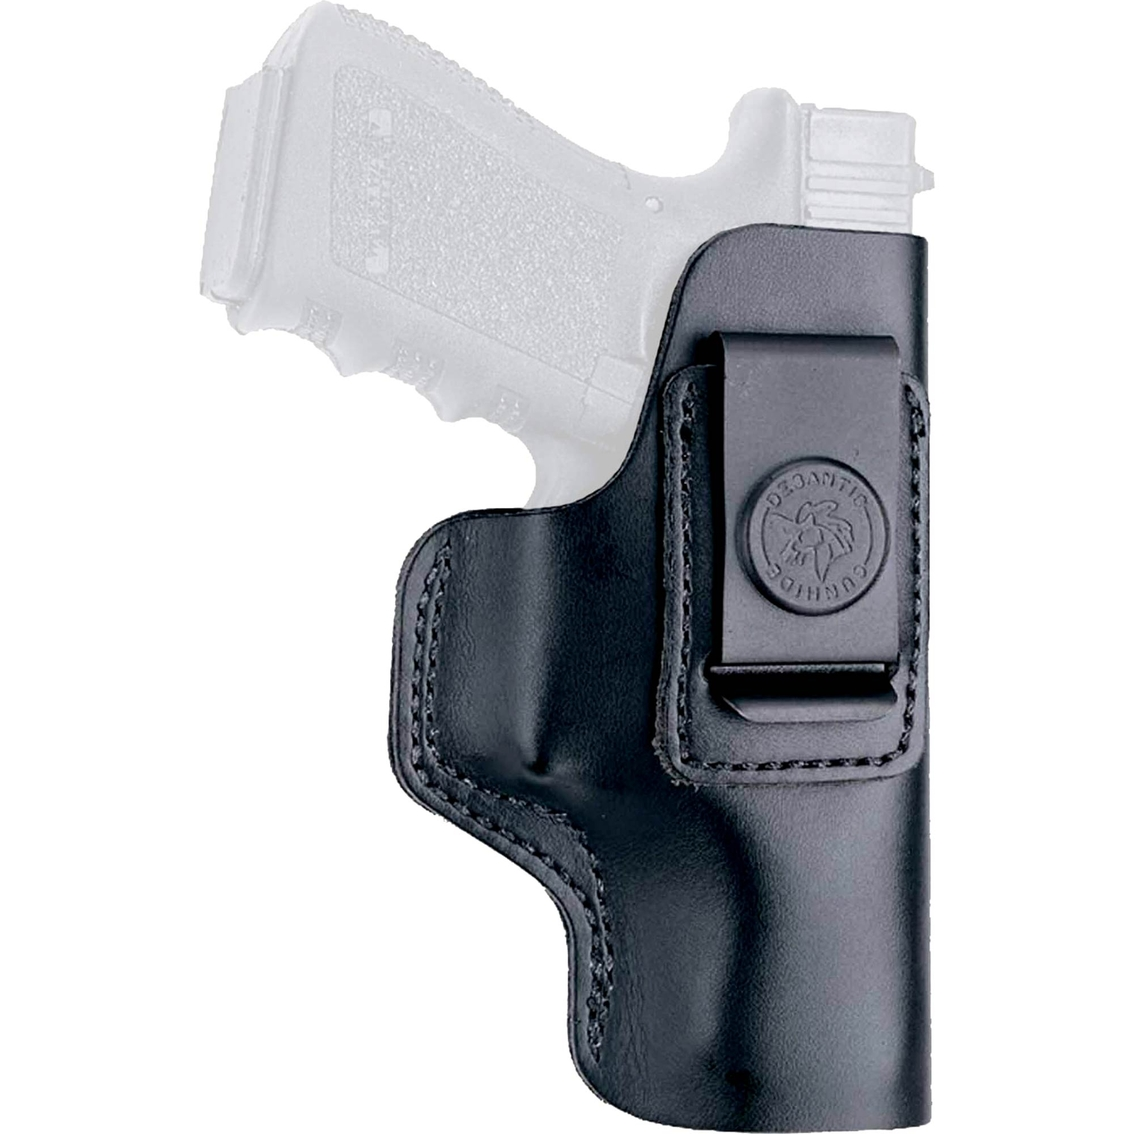 Desantis Insider Inside The Pant Holster Ruger Lcp/kel-tec P3at